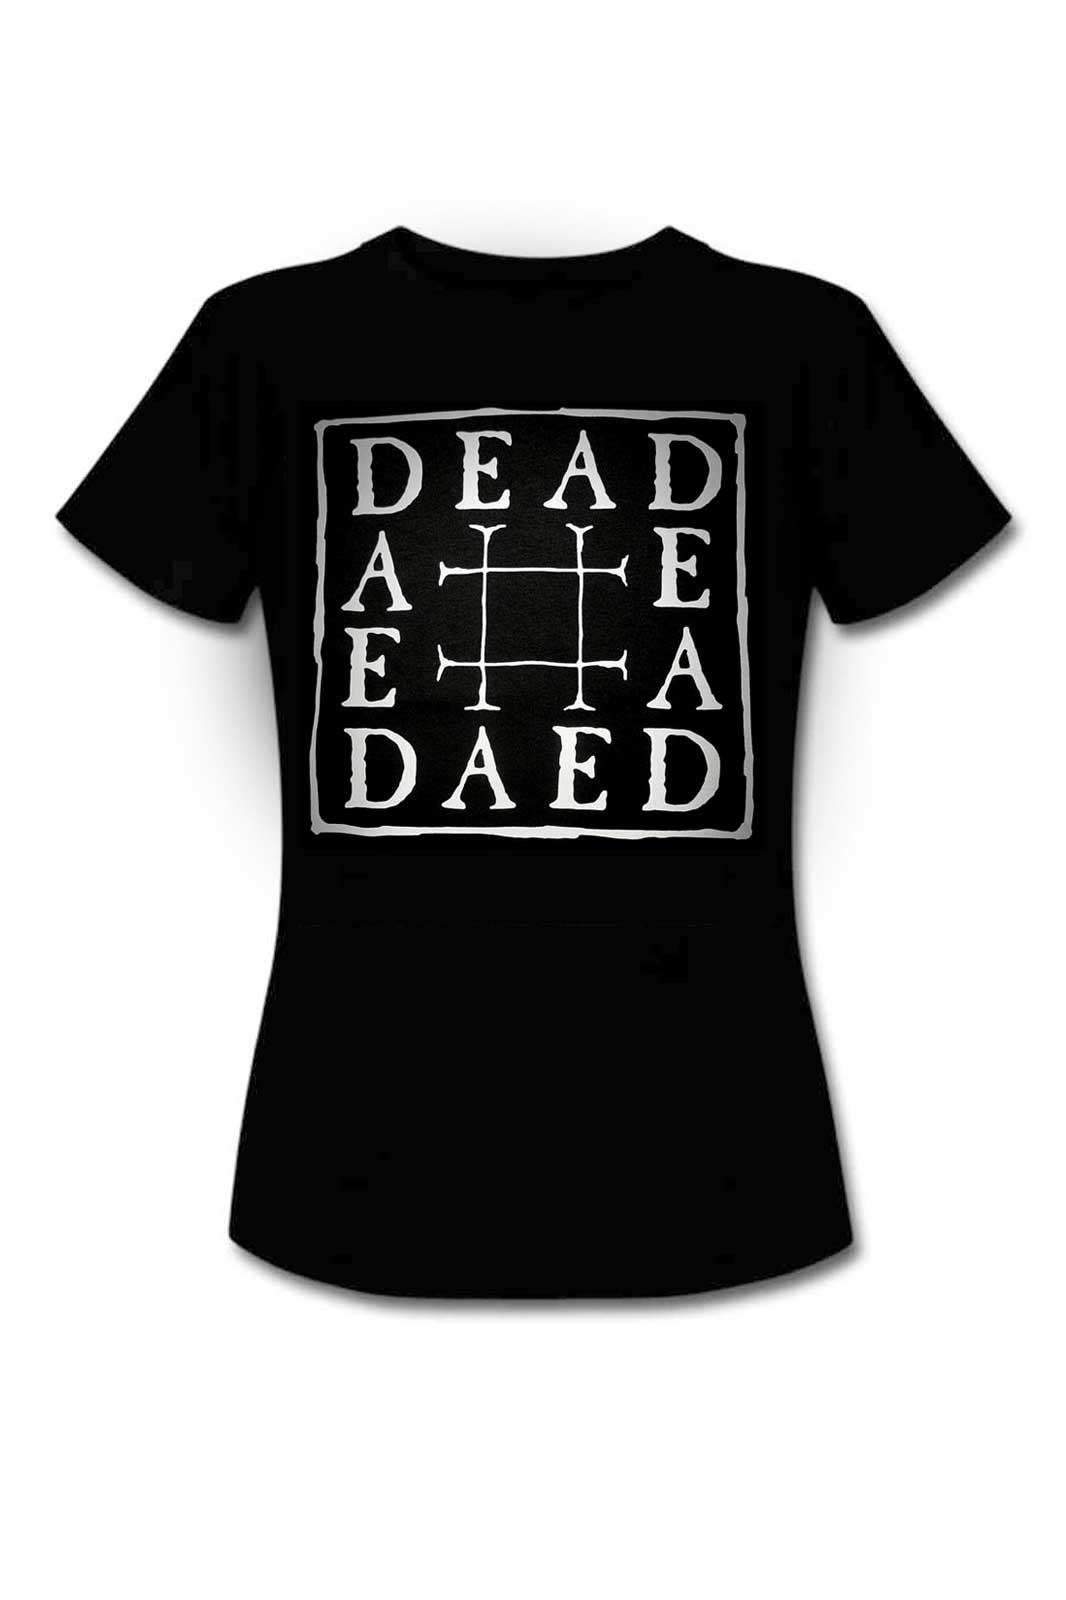 Ladies Tee Dead Black